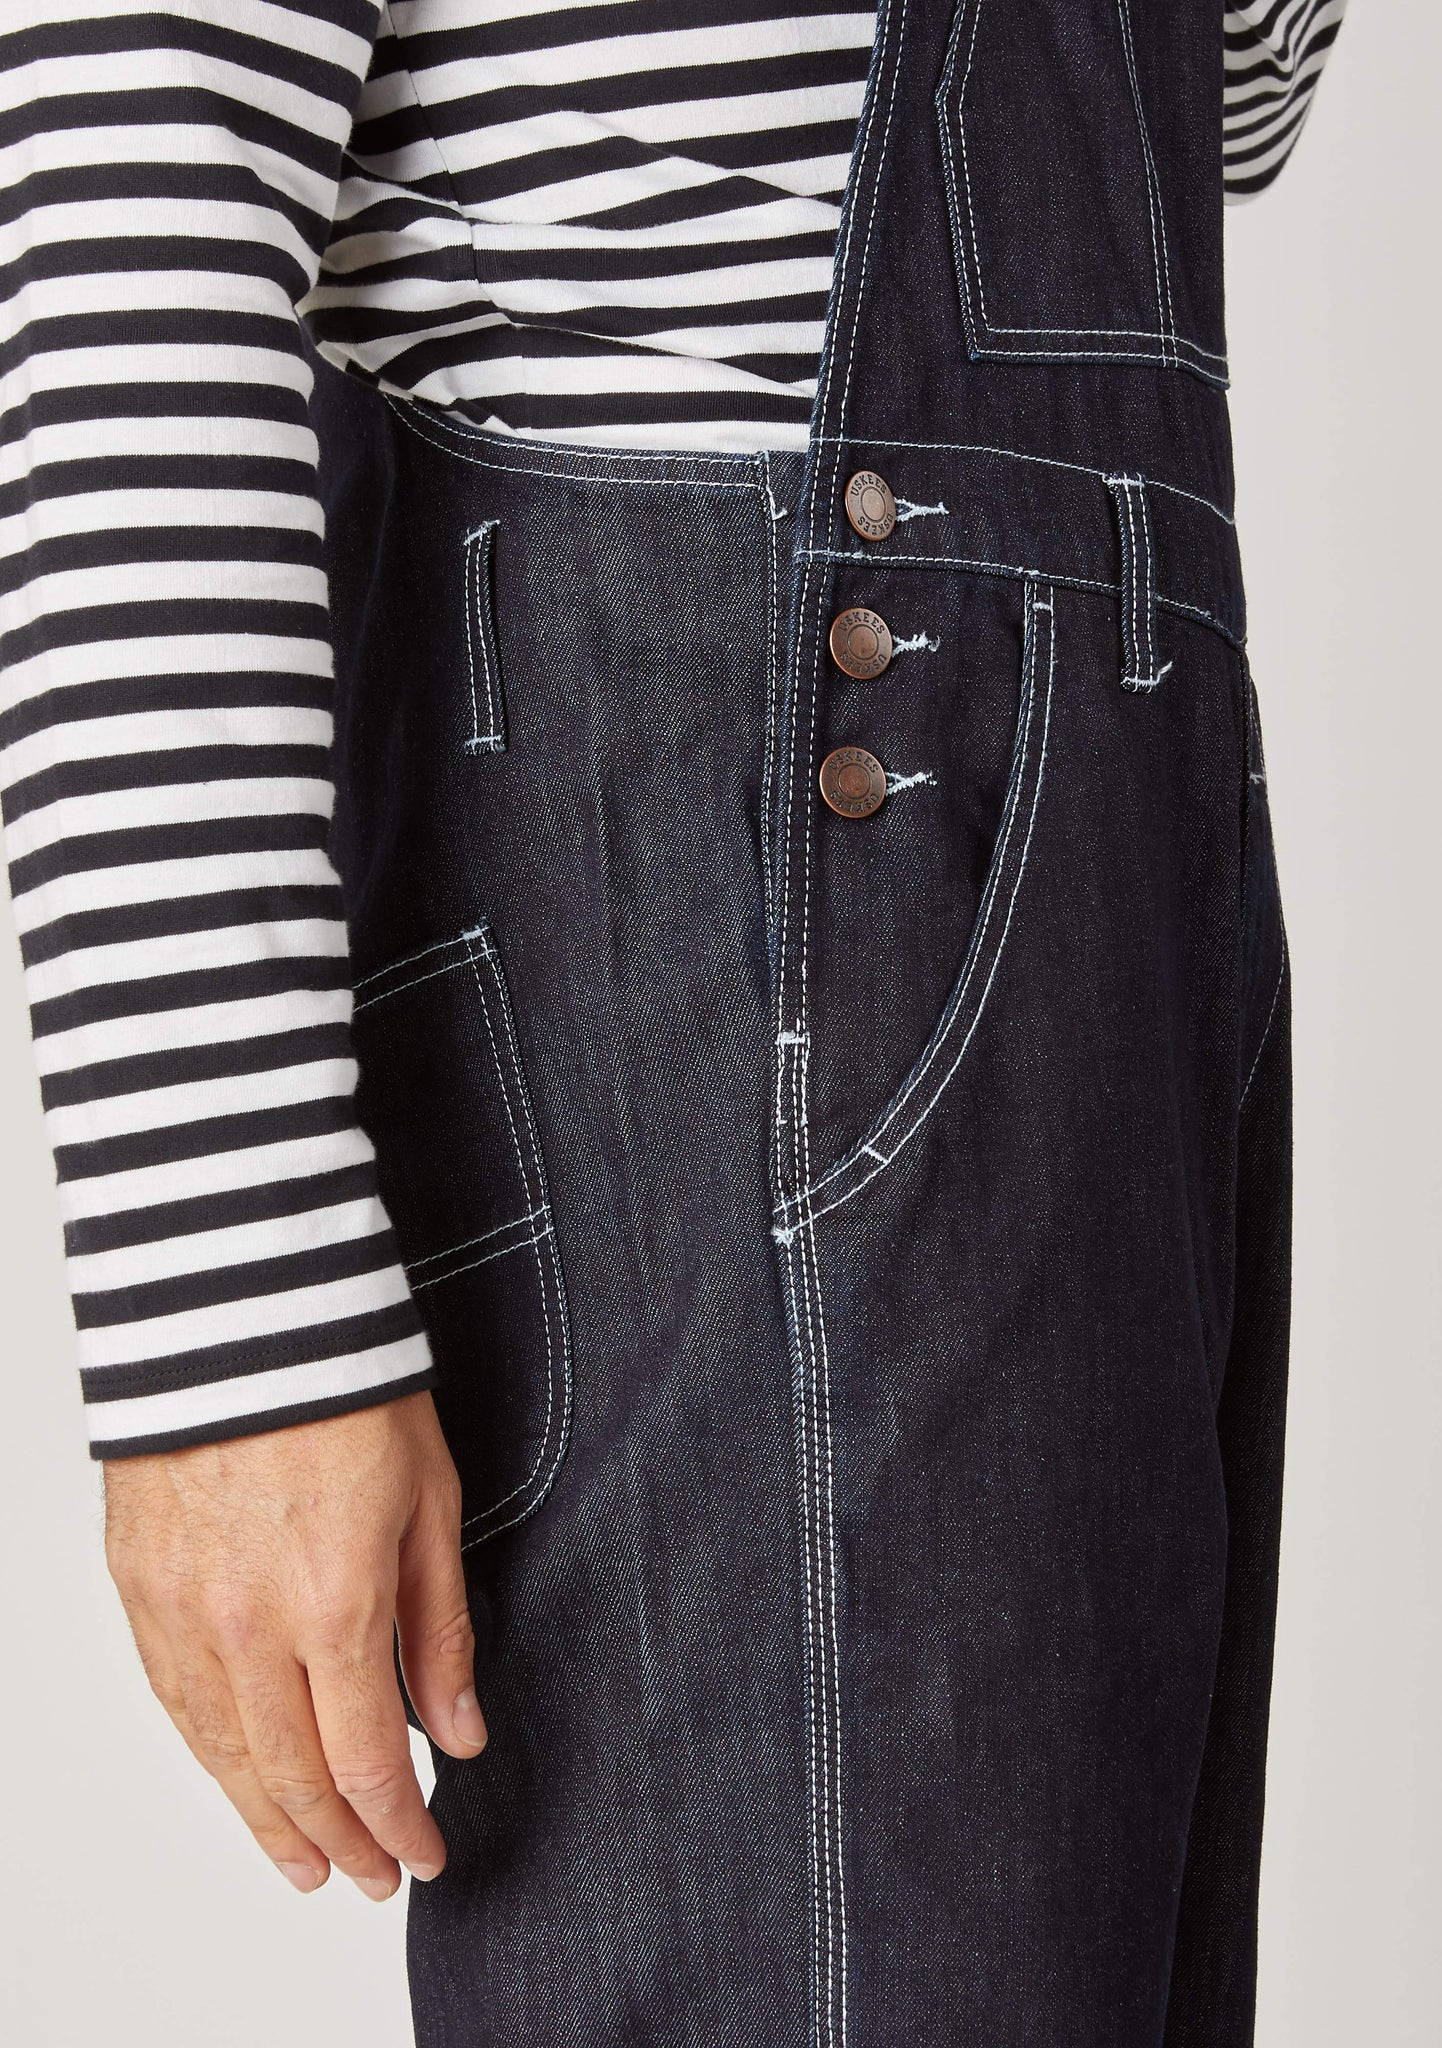 Close-up of Chet Dark Blue Denim Overall shorts for men showing the side three button fastening and contrast stitching